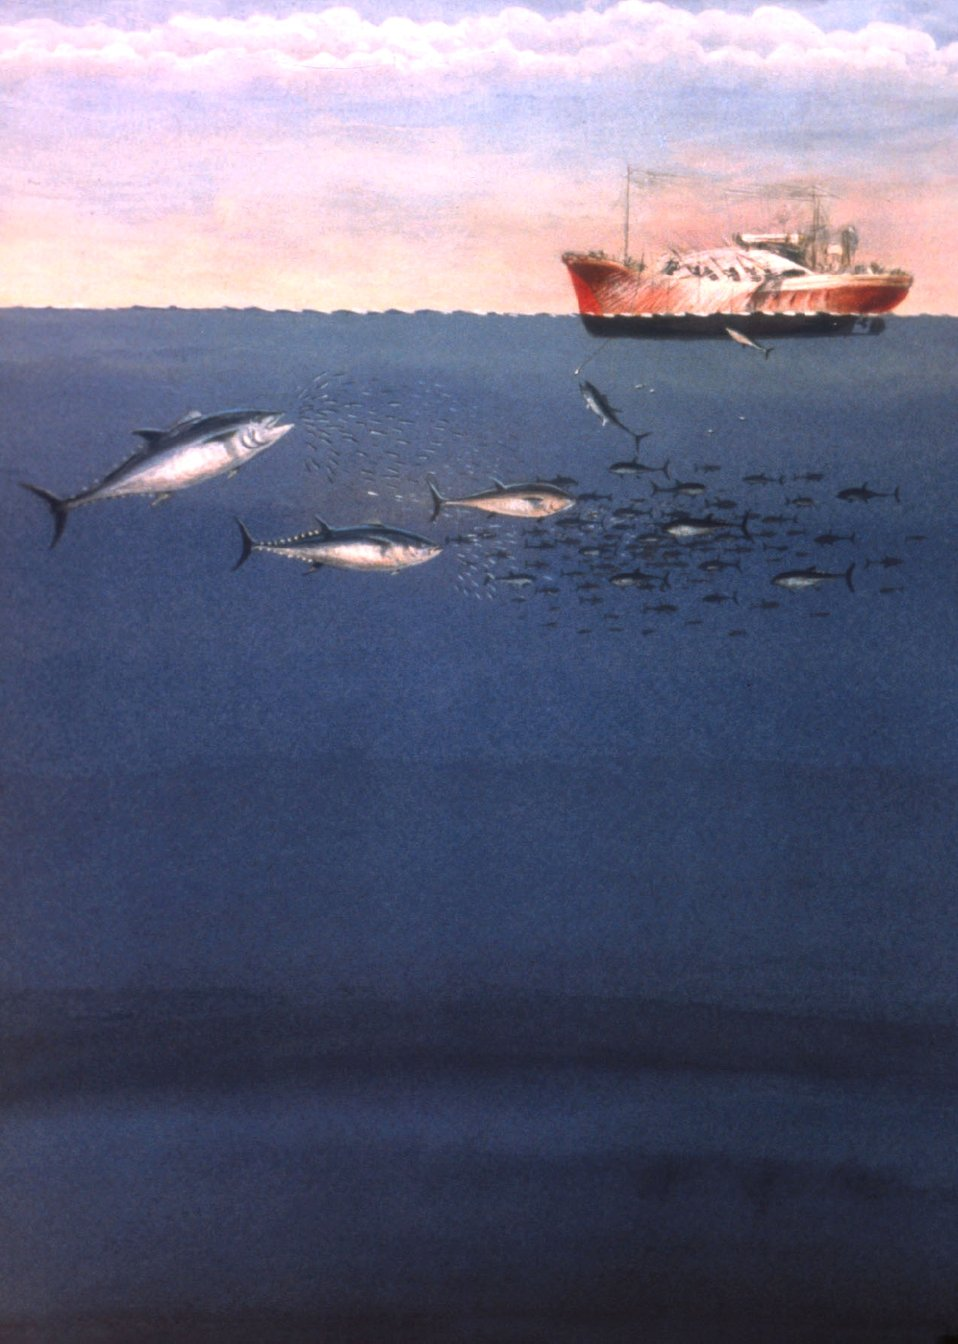 Artist's conception of school of tuna pursuing a school of bait fish while pole and line fishing is being conducted from fishing vessel.